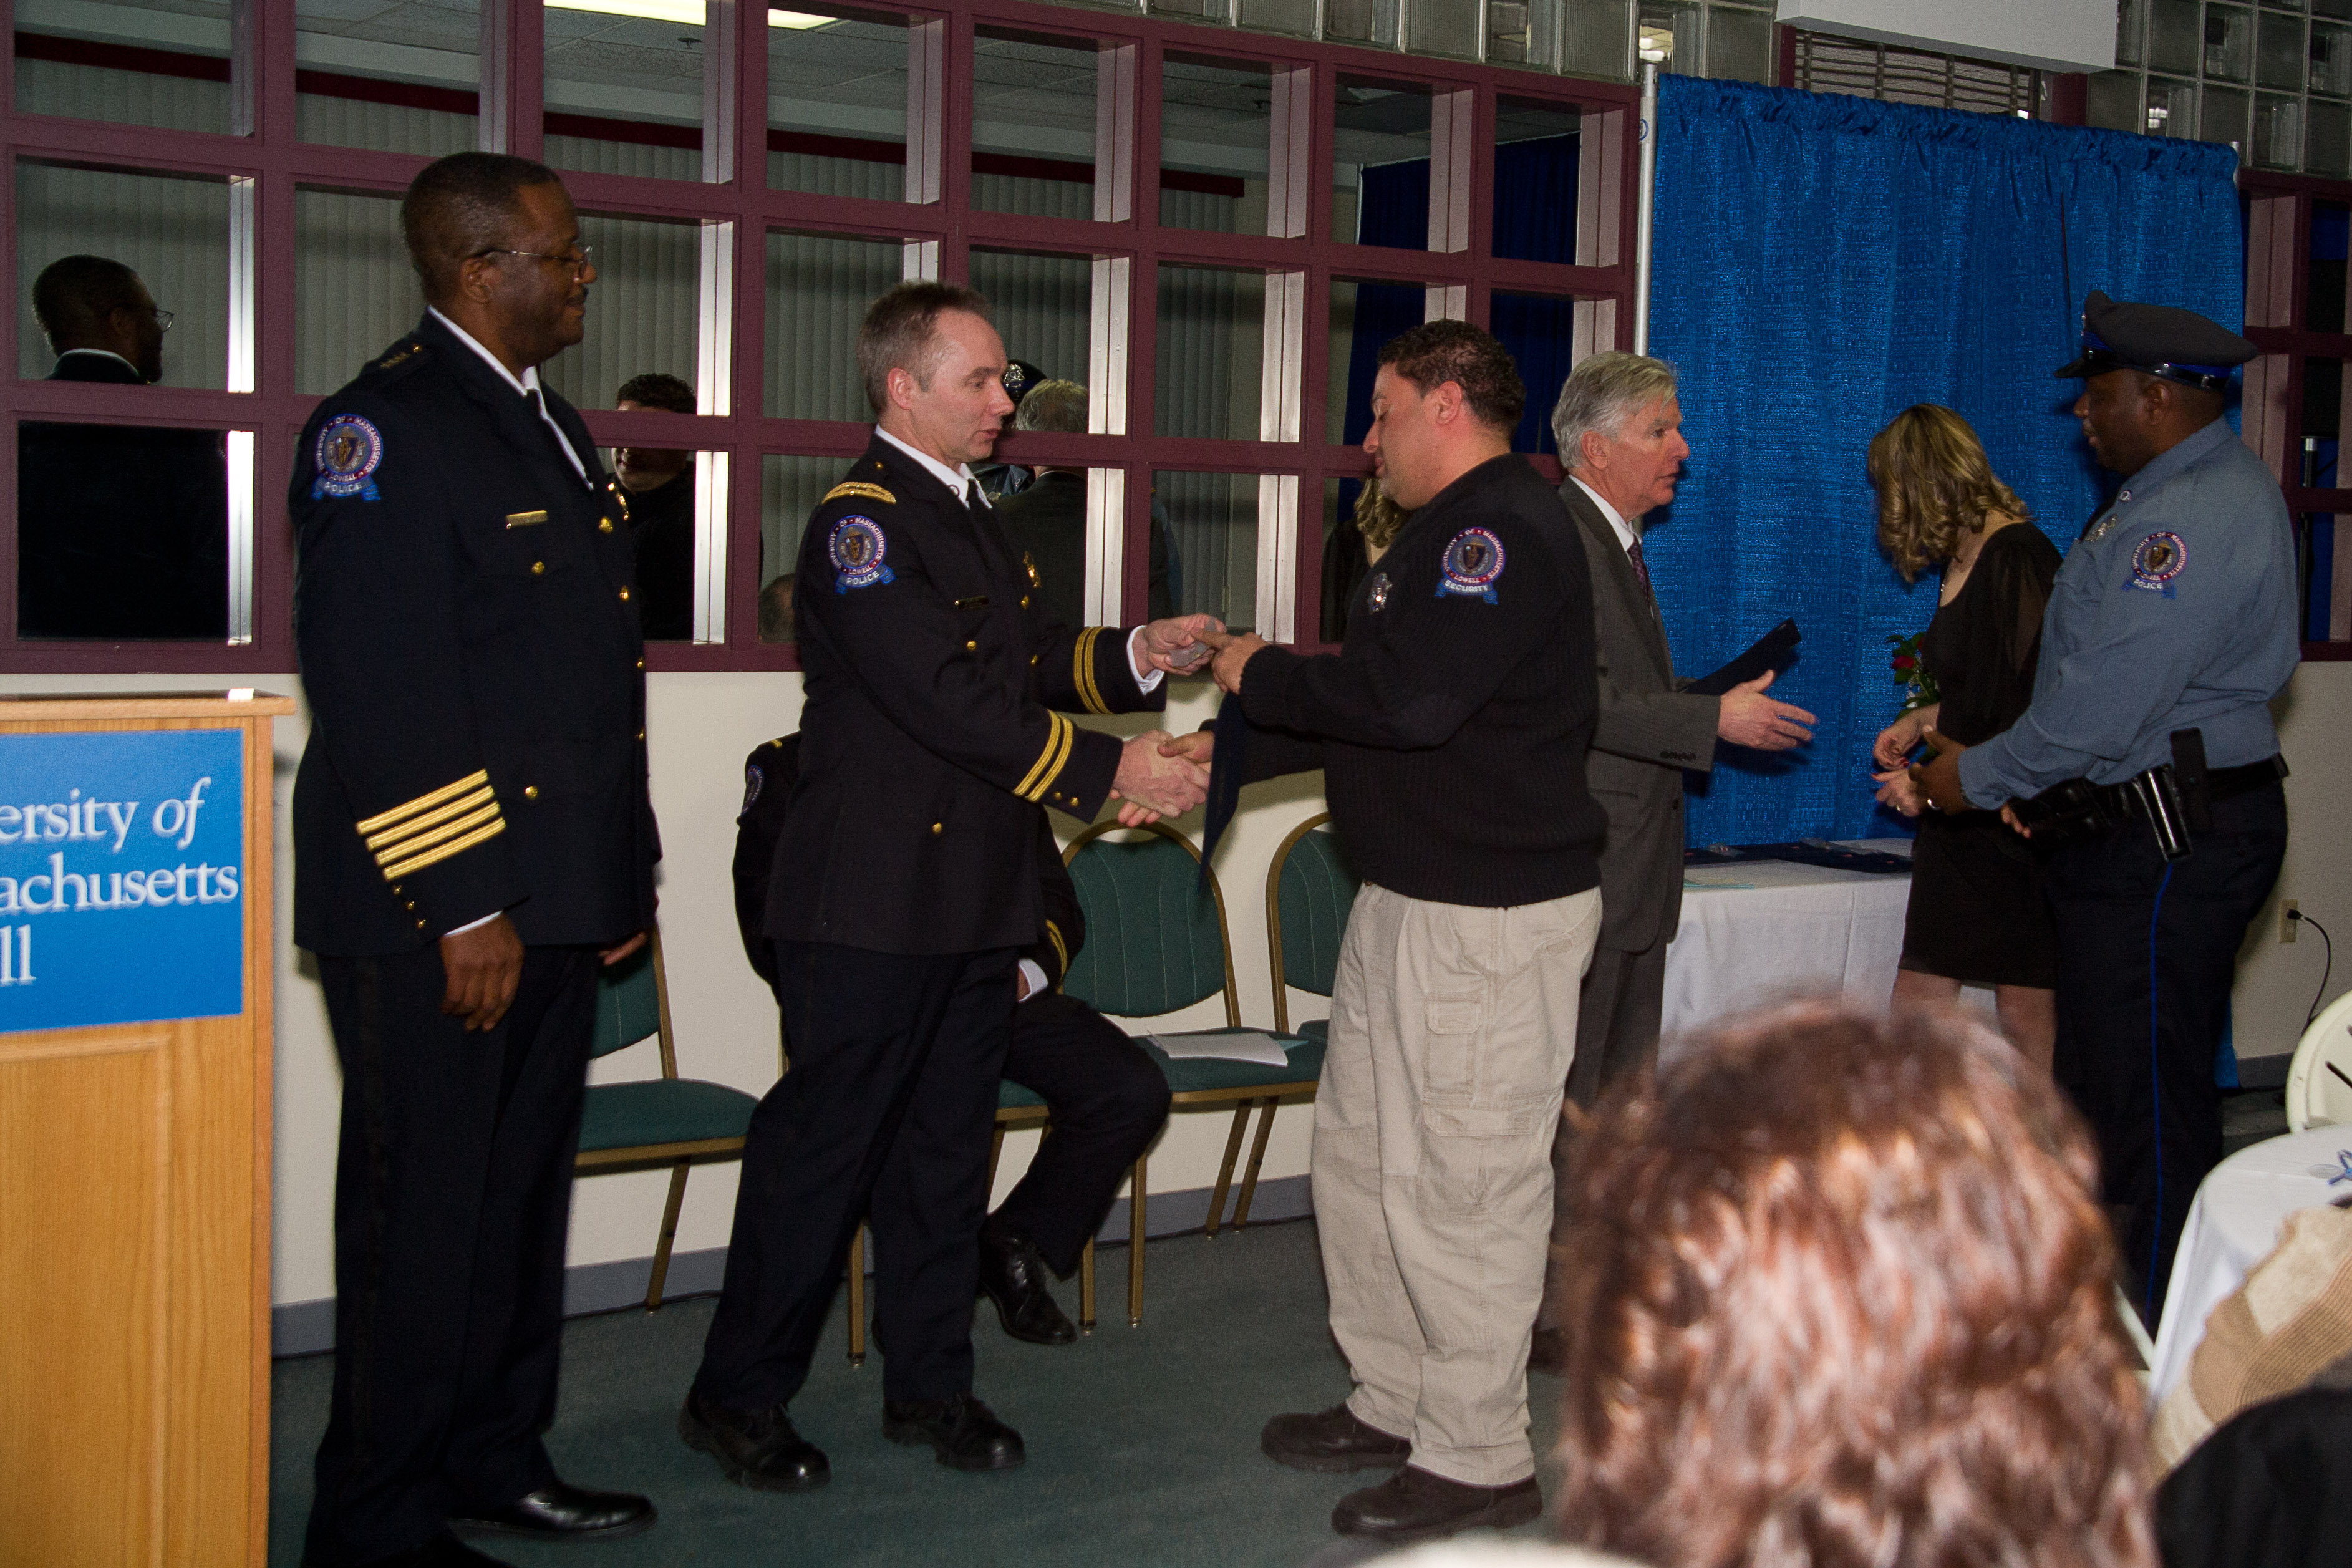 Seven members of UMass Lowell's Police Department were recognized for their accomplishments over the past year.